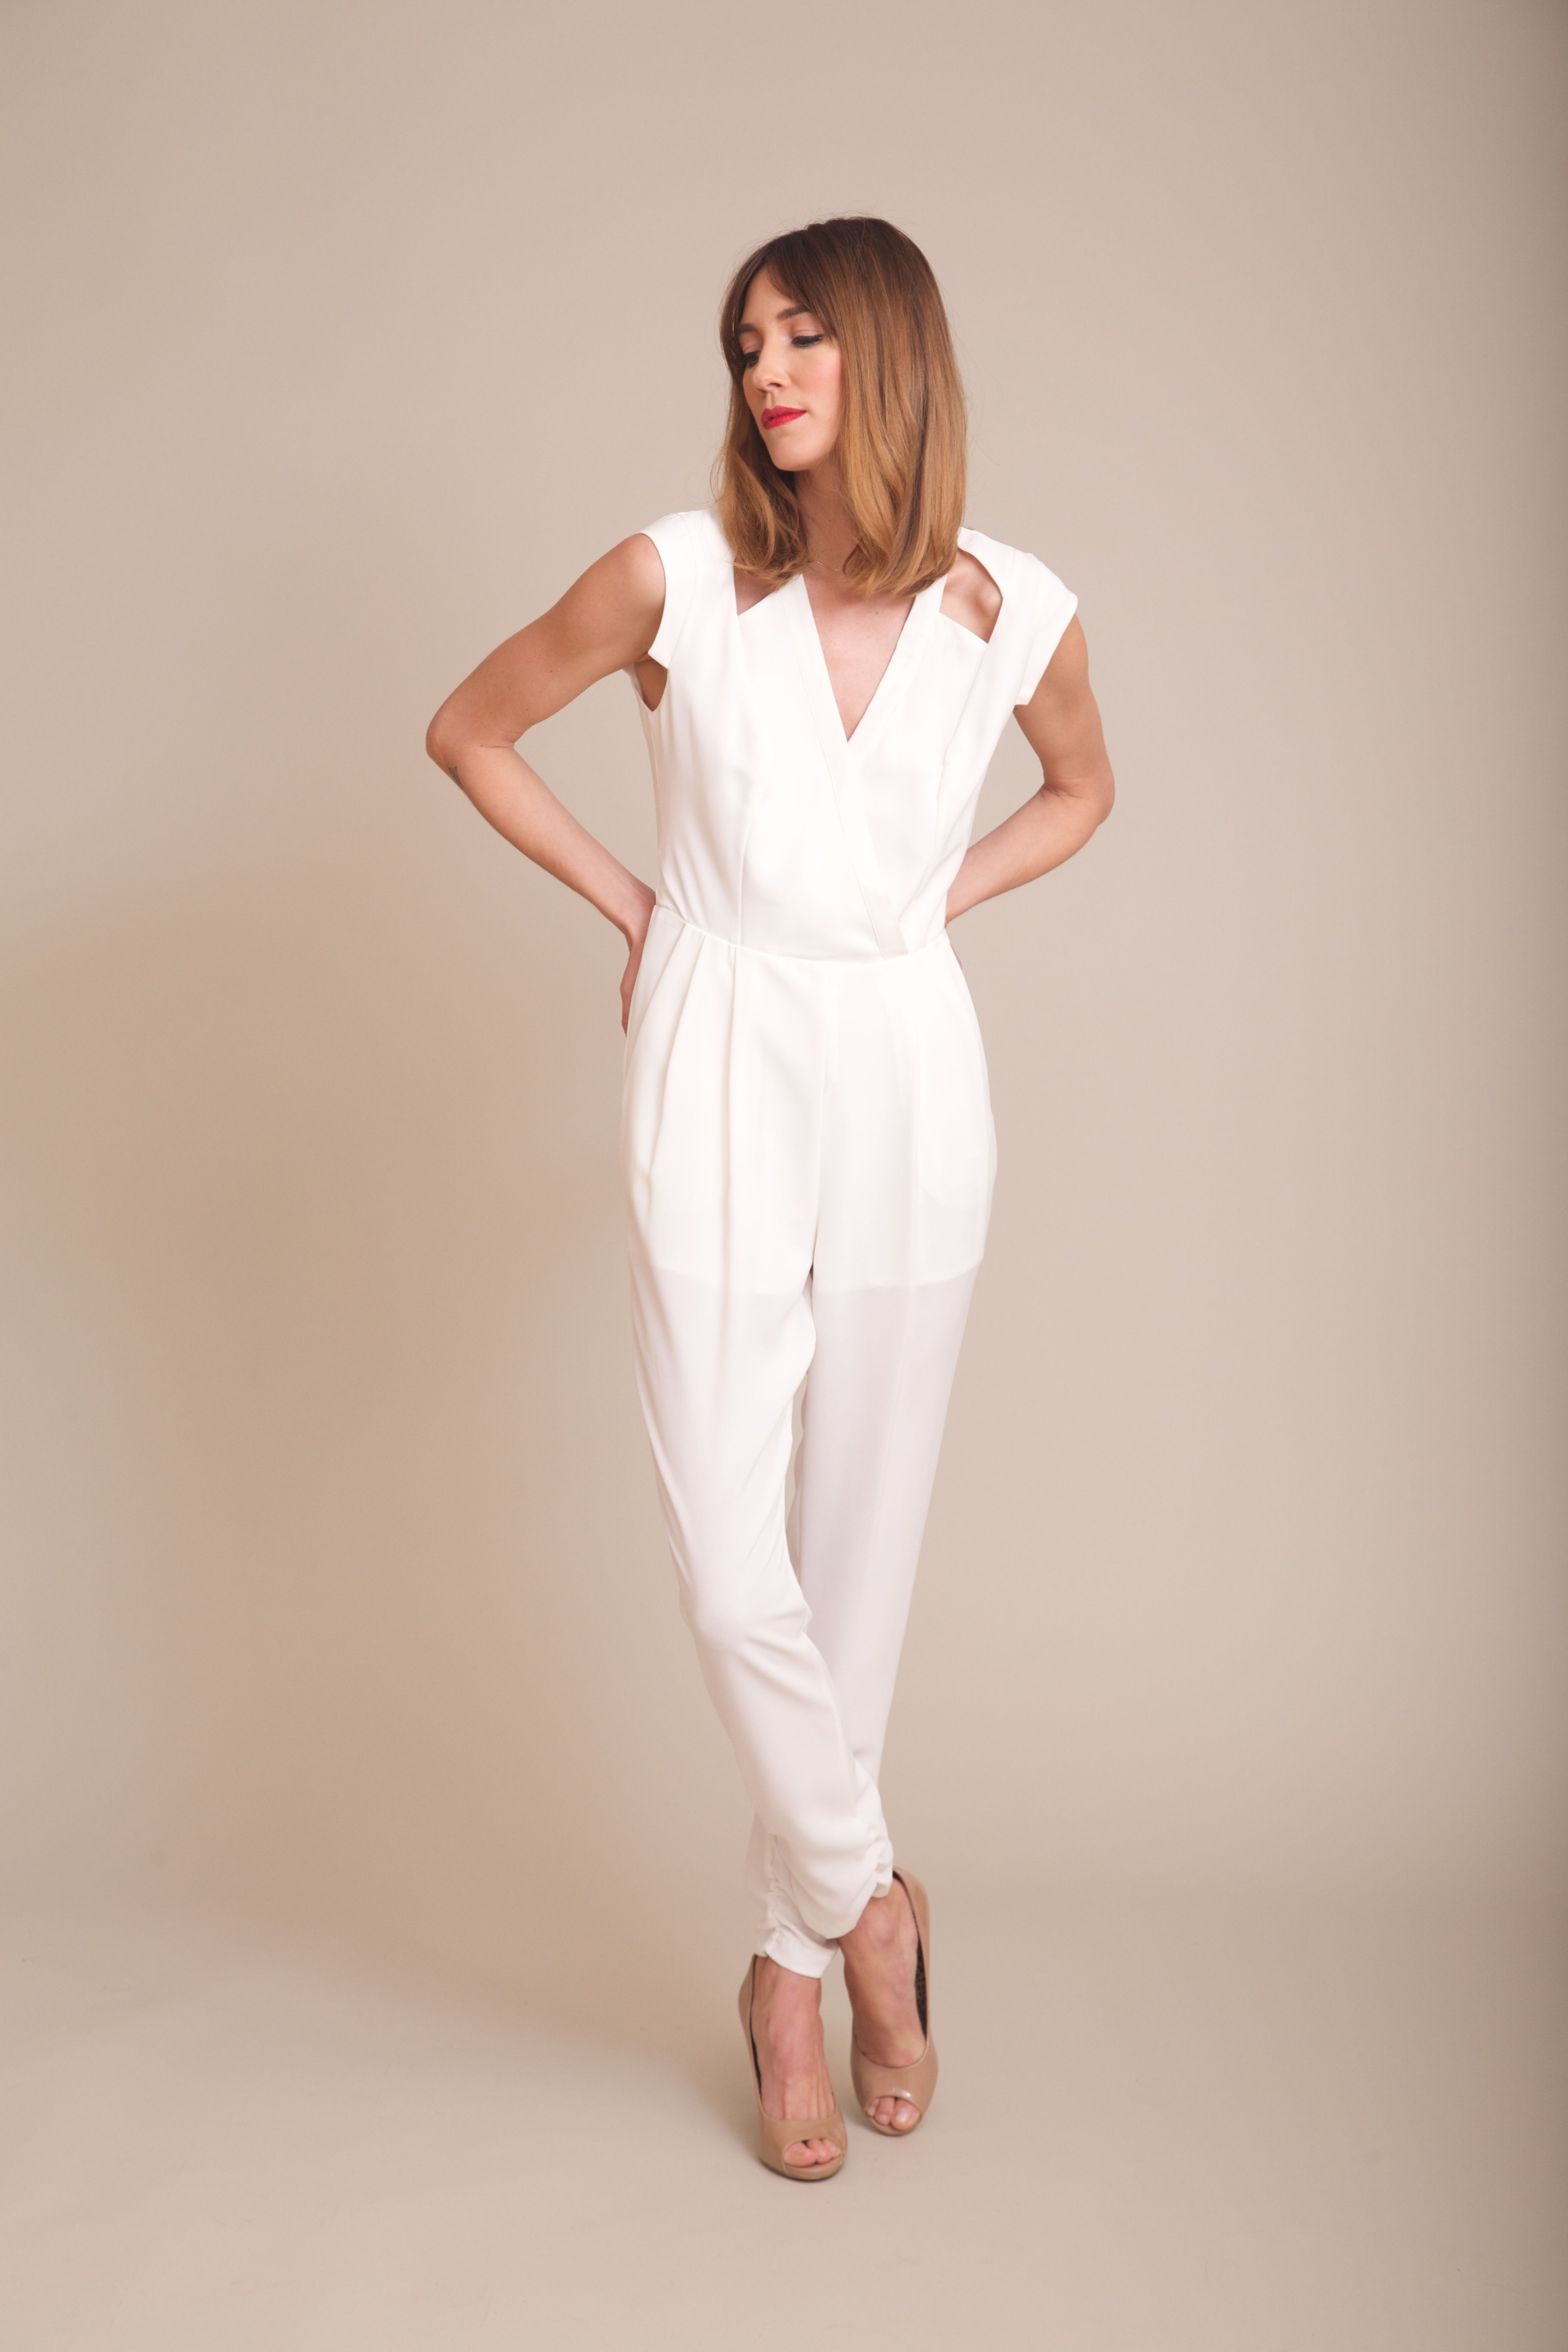 79f05e56b594 the perfect  weddingjumpsuit for the non-traditional bride on  www.shoplovely.com Photo courtesy of Brooke   Sam Photography.